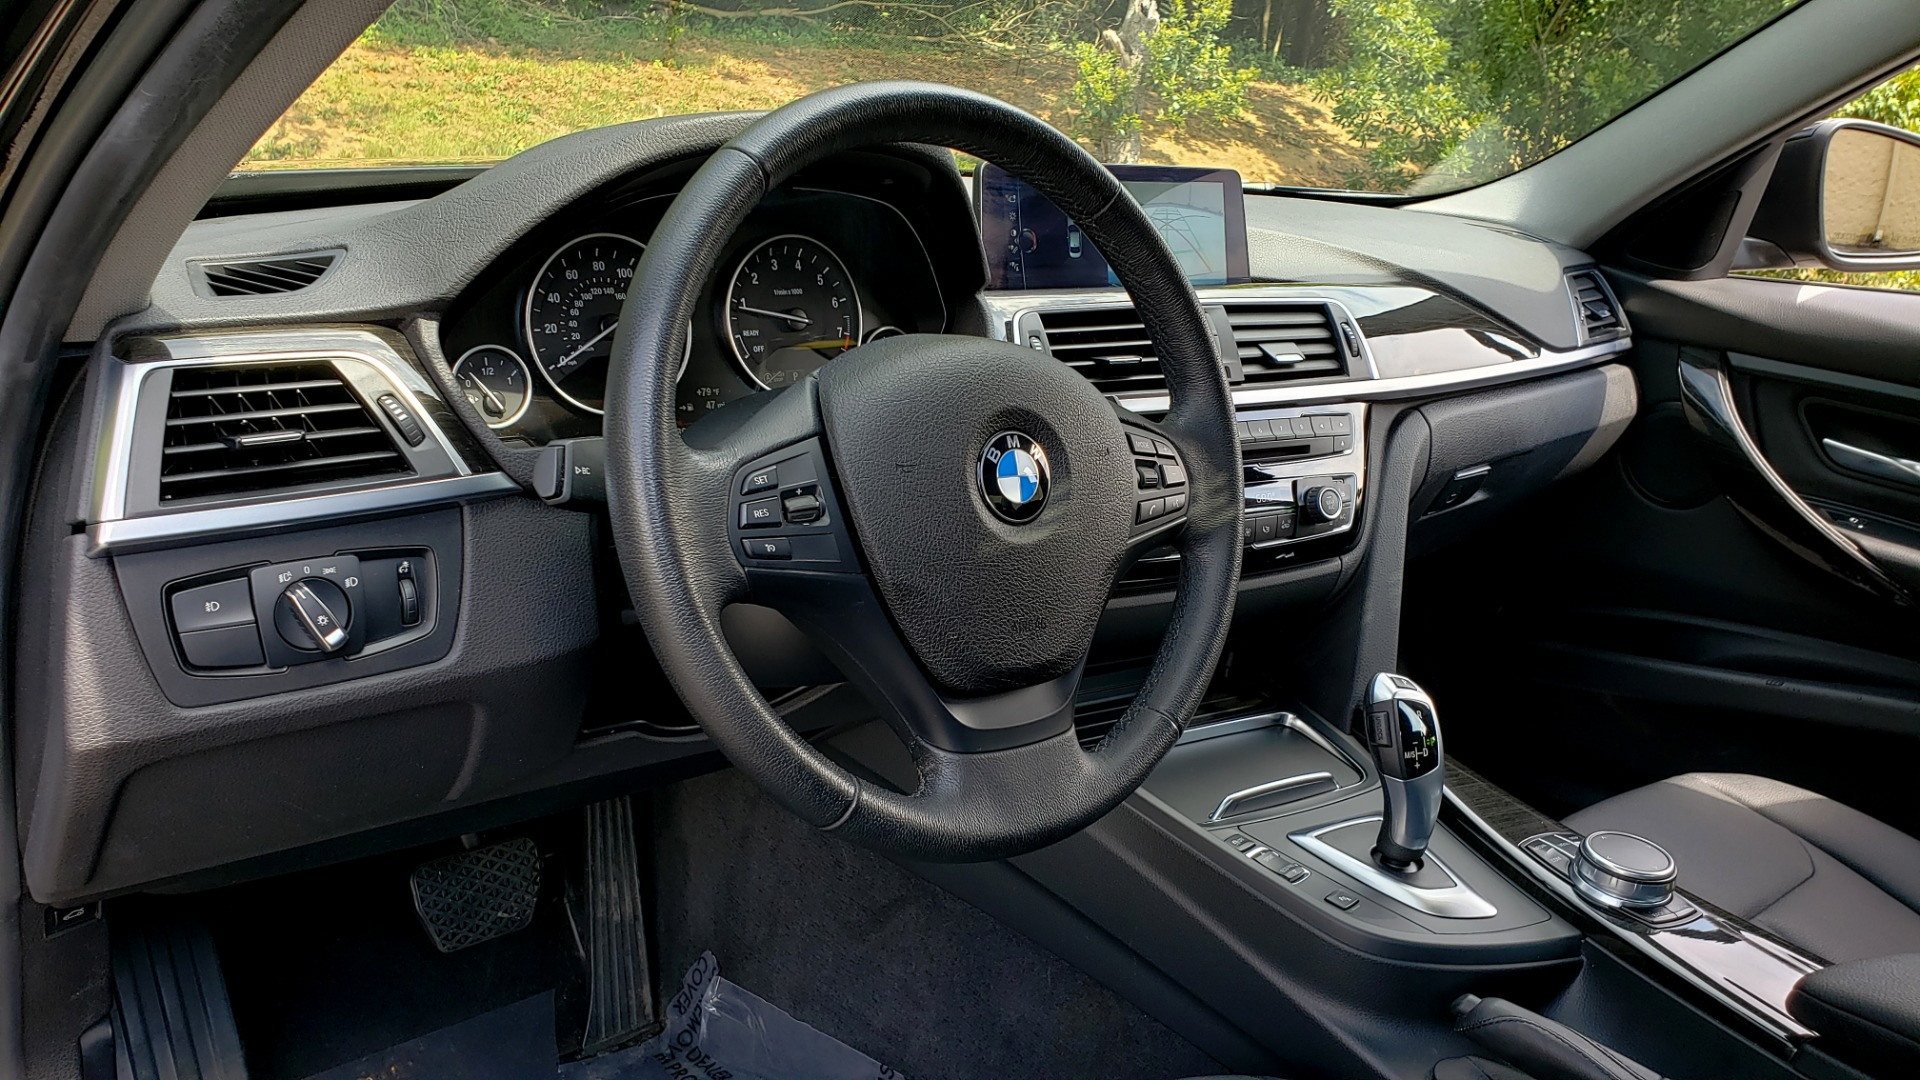 Used 2017 BMW 3 SERIES 320I XDRIVE / DRVR ASST / NAV / SUNROOF / HTD STS / REARVIEW for sale $21,995 at Formula Imports in Charlotte NC 28227 36